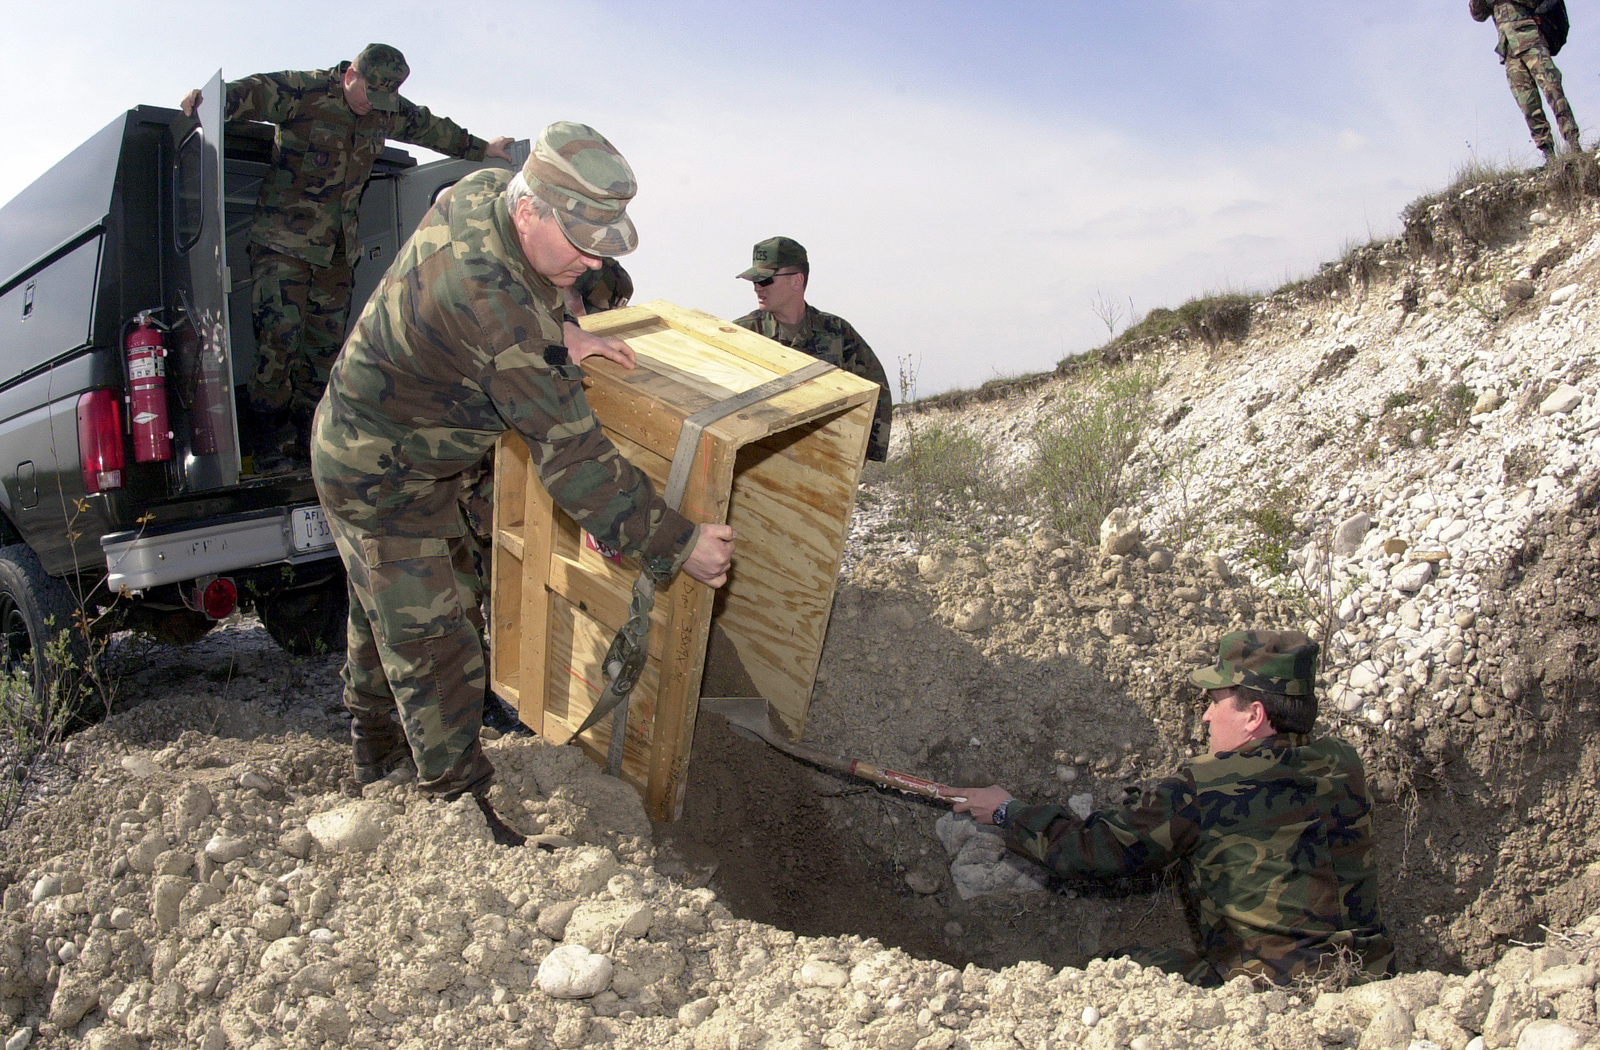 CHIEF MASTER Sergeant (CMSGT) Pepe Giacomo, and Warrant Officer Laurano Agostino, 3RD Regiment of Engineers, Udinese Army Detachment, use sand to cover unexploded ordnance at the Maniago Range, in Italy. The unexploded ordnance was uncovered by construction worker while digging trenches for waterlines during Aviano 2000 (AV2K) construction. USAF Explosive Ordnance Disposal (EOD) personnel assigned to the 31ST Civil Engineer Squadron, Aviano AB, Italy helped with the disposal project